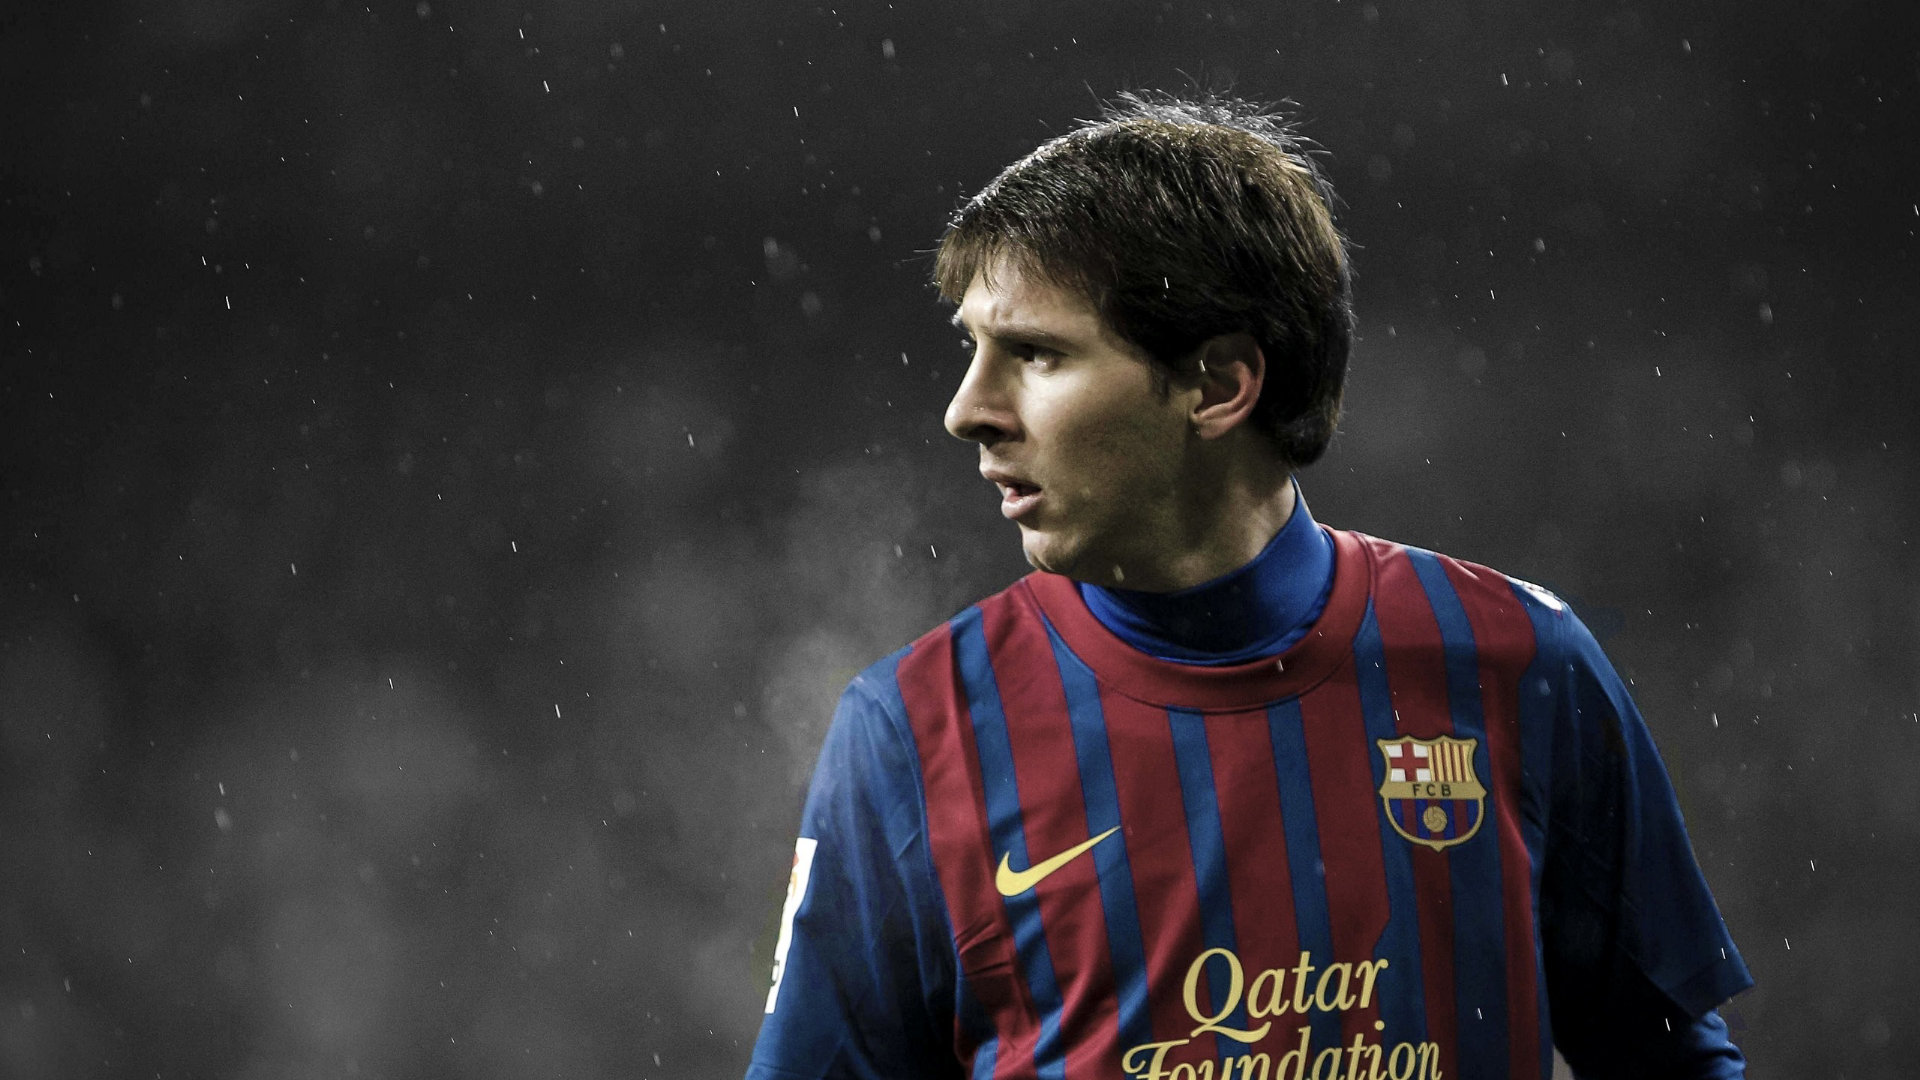 Lionel Messi Hd Wallpapers For Desktop Download